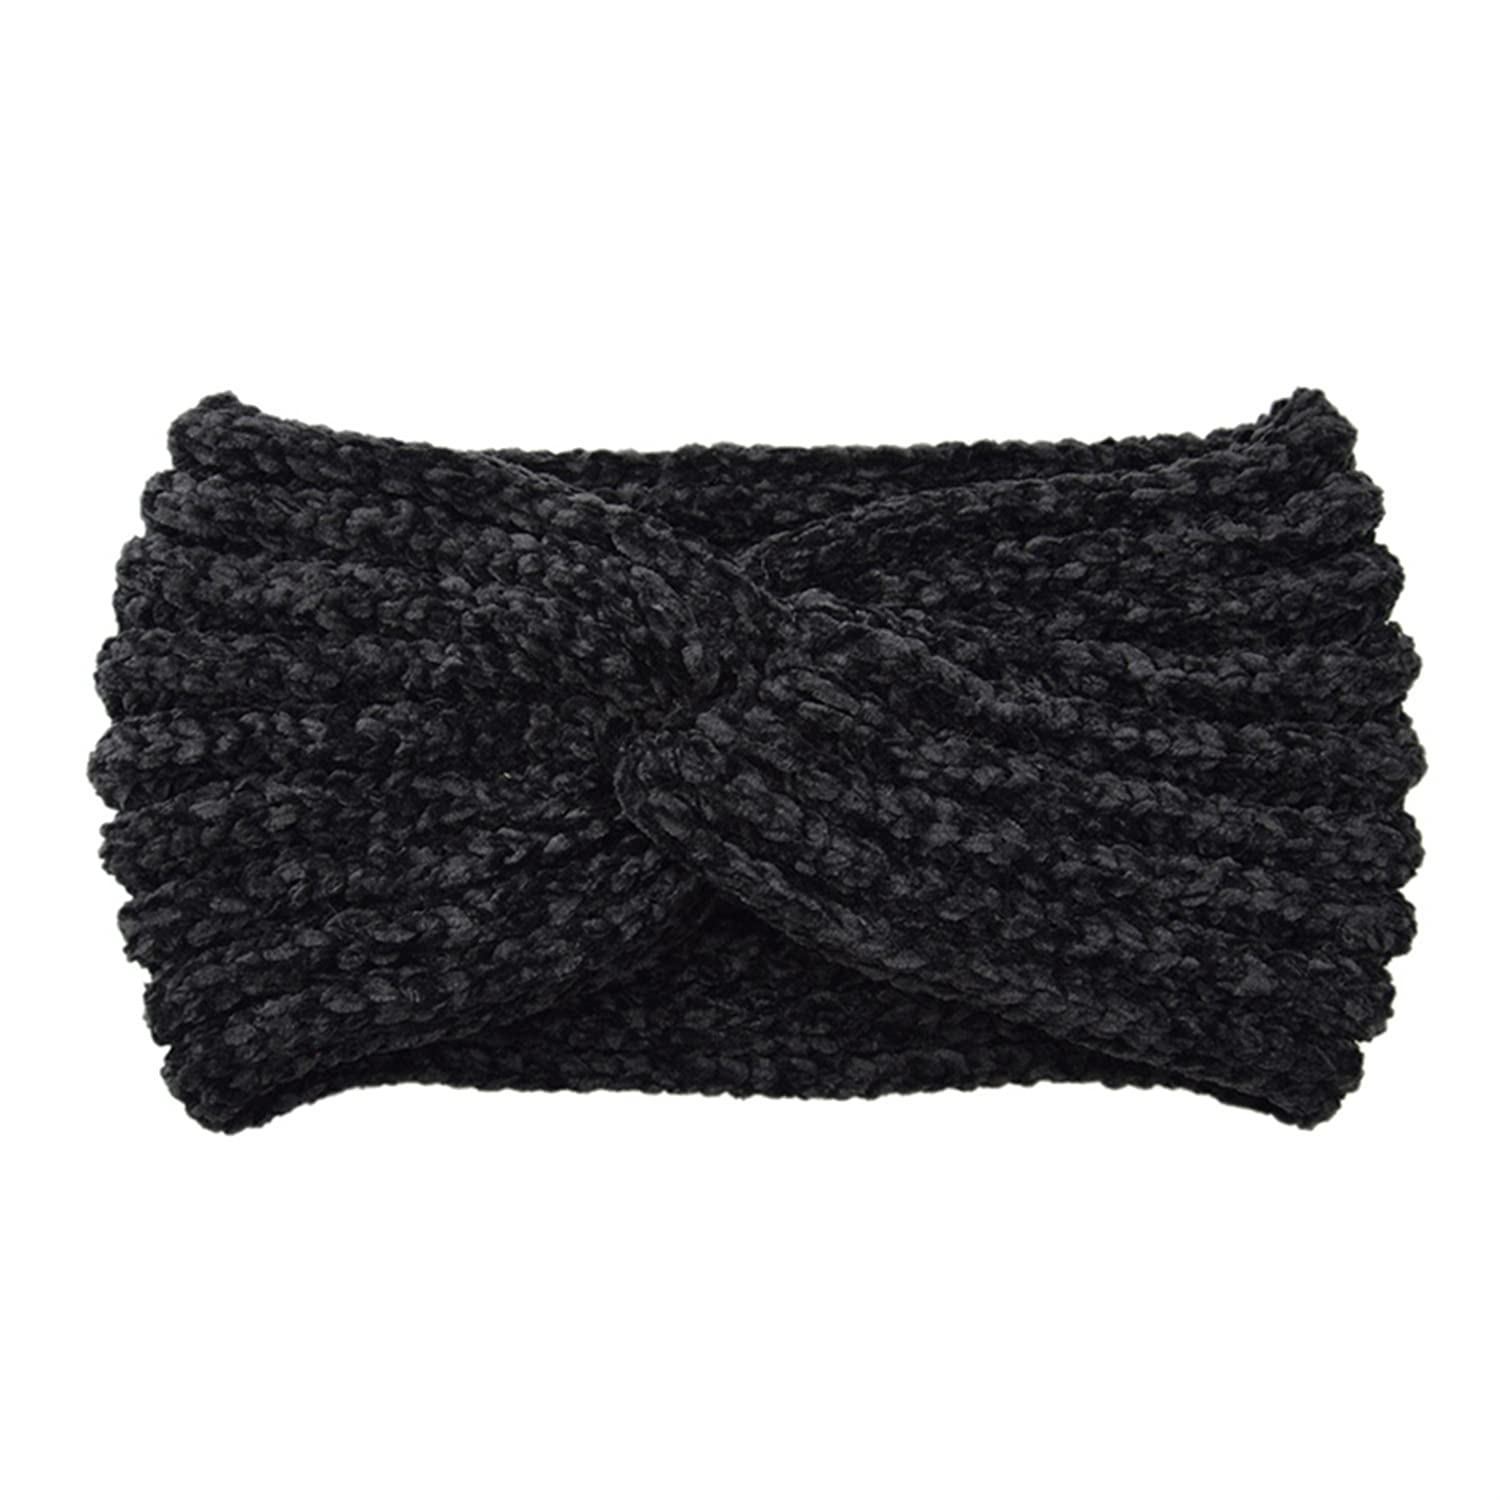 NEW Women Handmade Woven Headband Cross Knotted Knitted Corduroy Warm Ear Warmer Stretch Head Bands Simple Hair Accessories Black